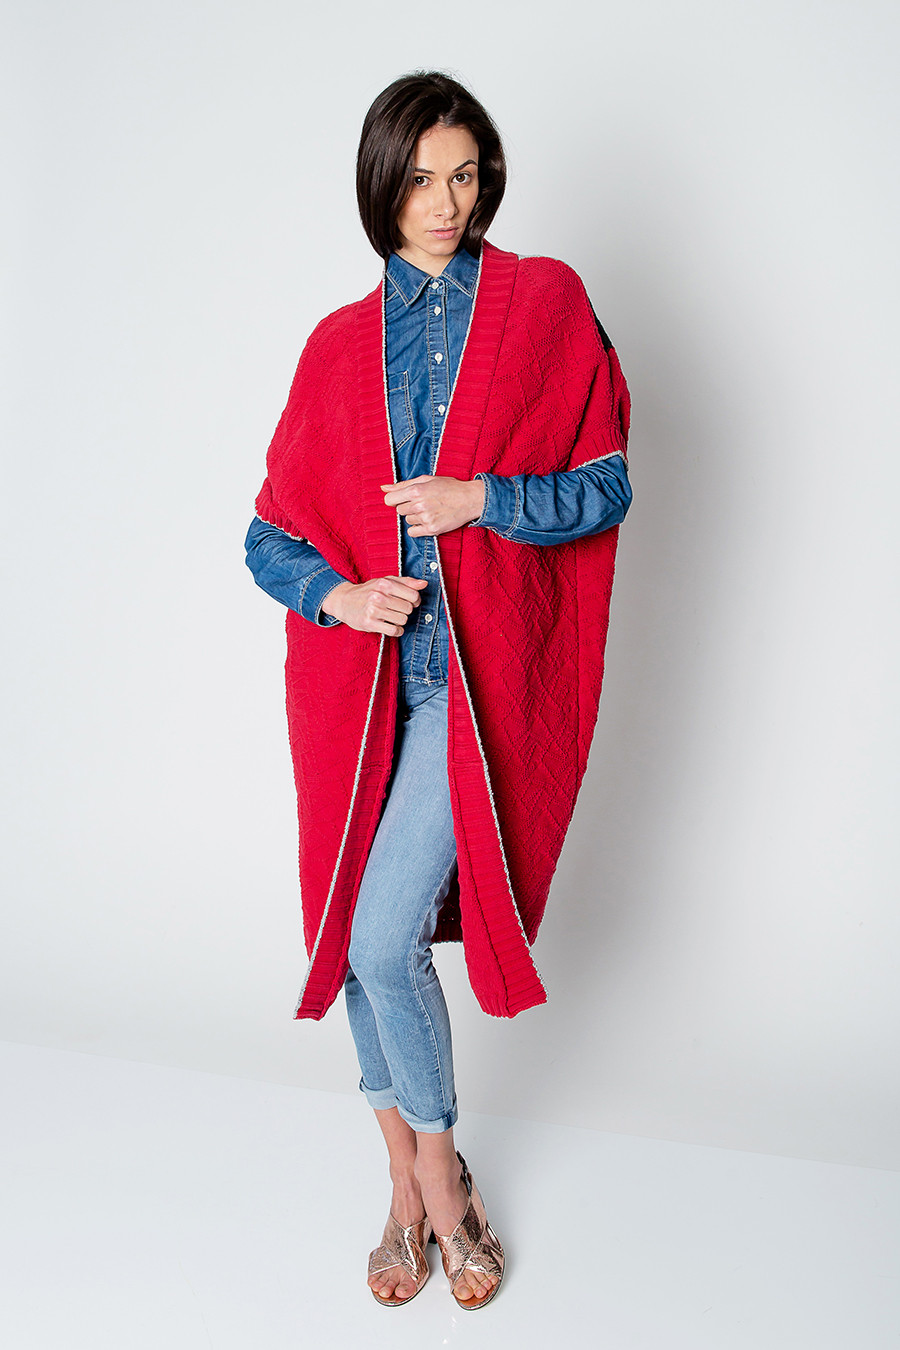 Cotton Knit New Knit Cotton Red Cardigan — Hay Hay Of Marvelous 41 Ideas Cotton Knit